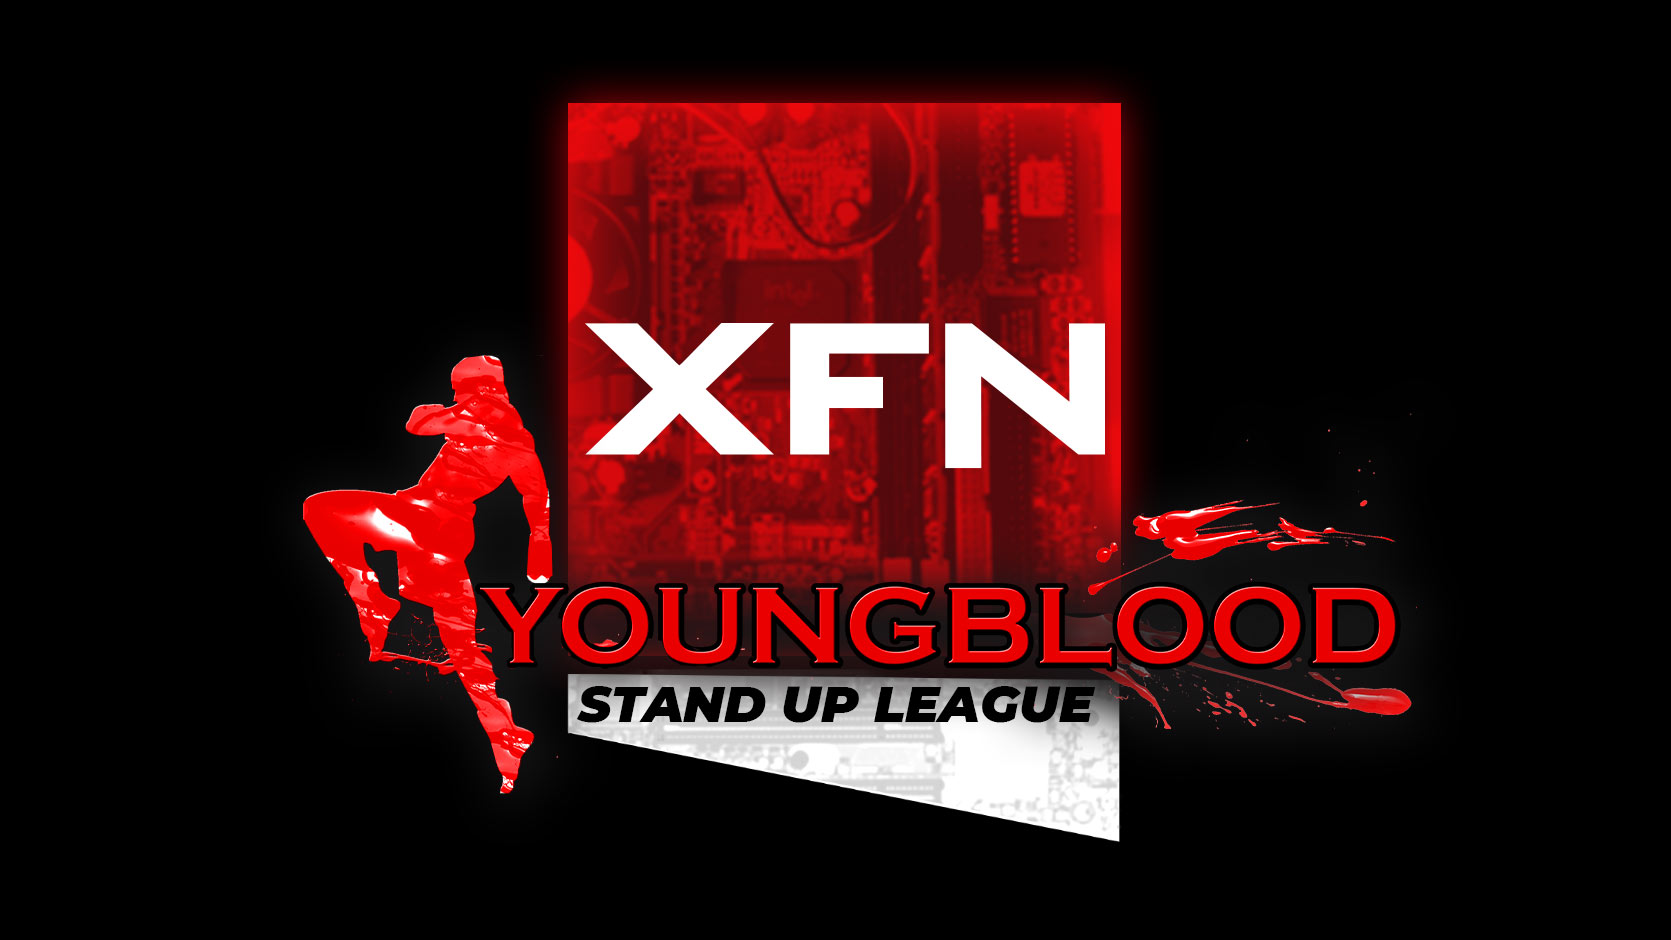 XFN YOUNG BLOOD